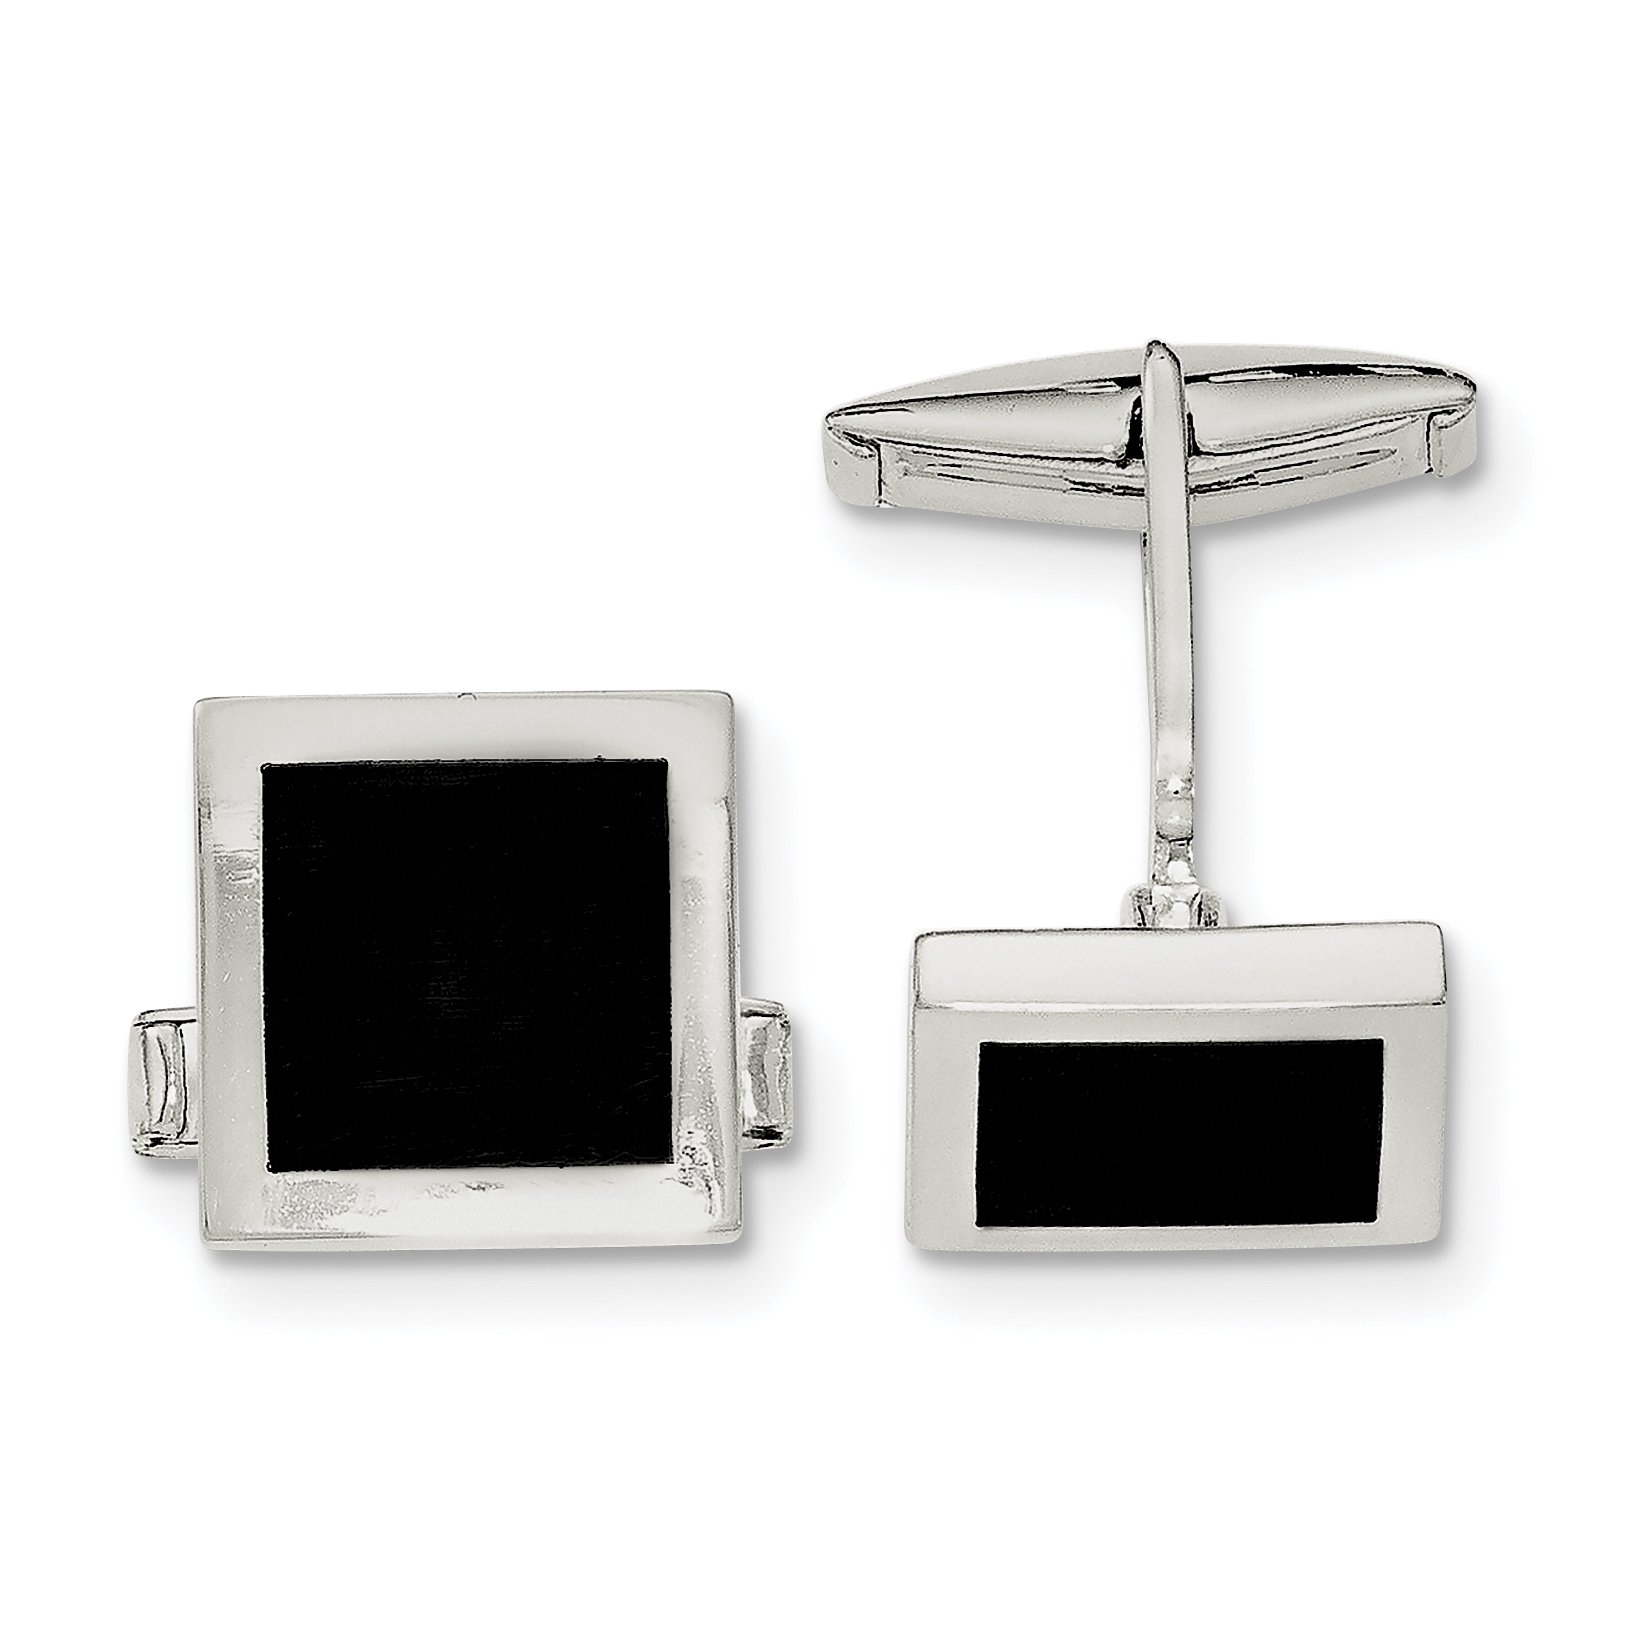 ICE CARATS 925 Sterling Silver Black Onyx Cuff Links Mens Cufflinks Link Fine Jewelry Dad Mens Gift Set by ICE CARATS